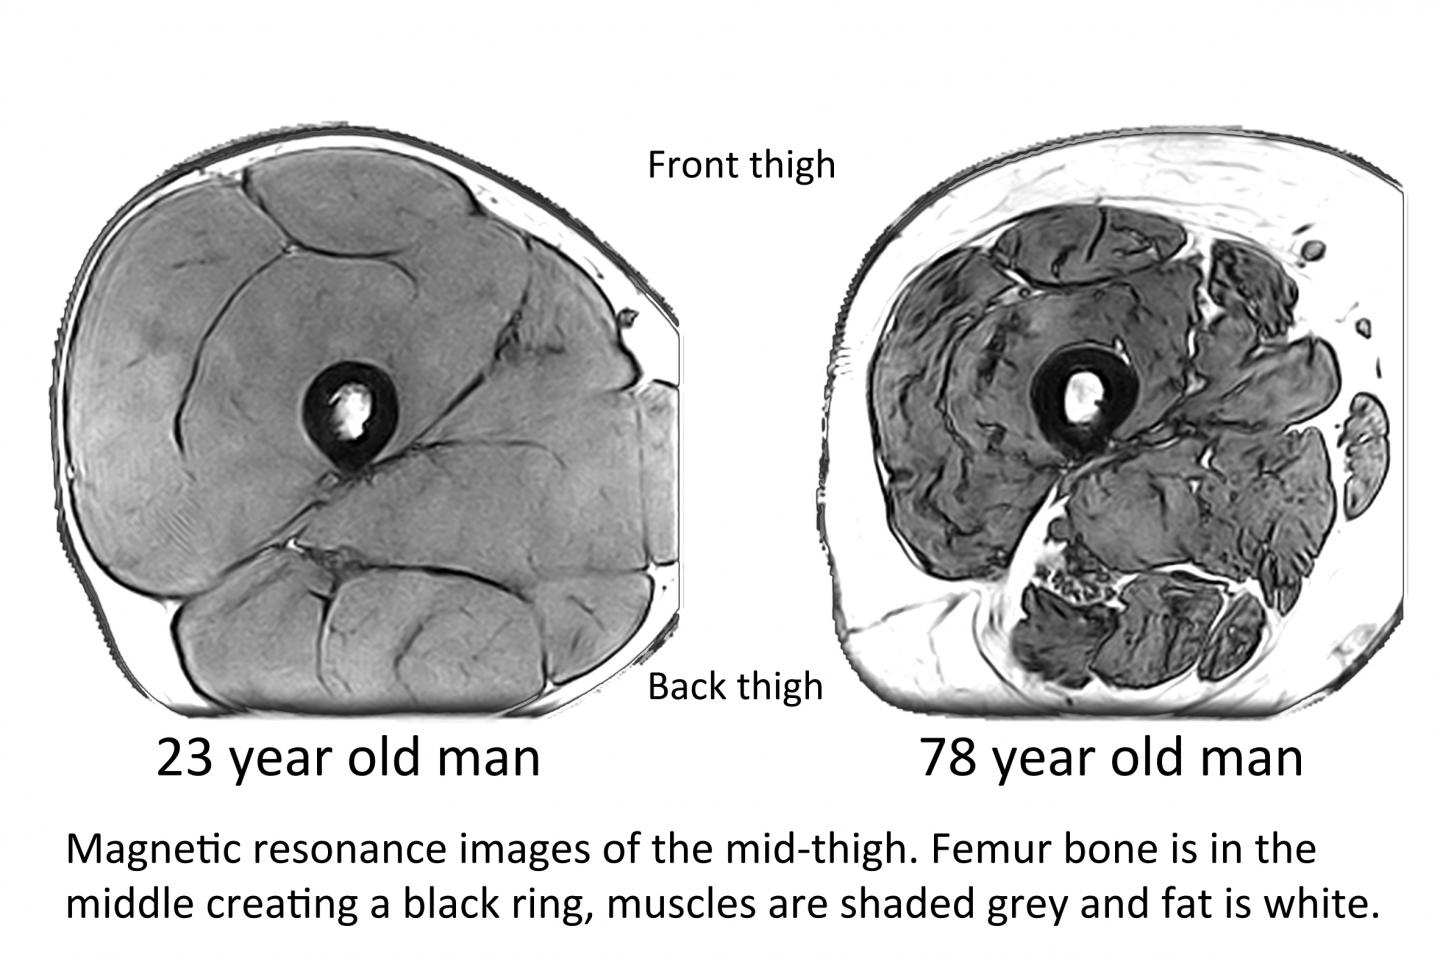 Magnetic Resonance Images of the Mid-Thigh